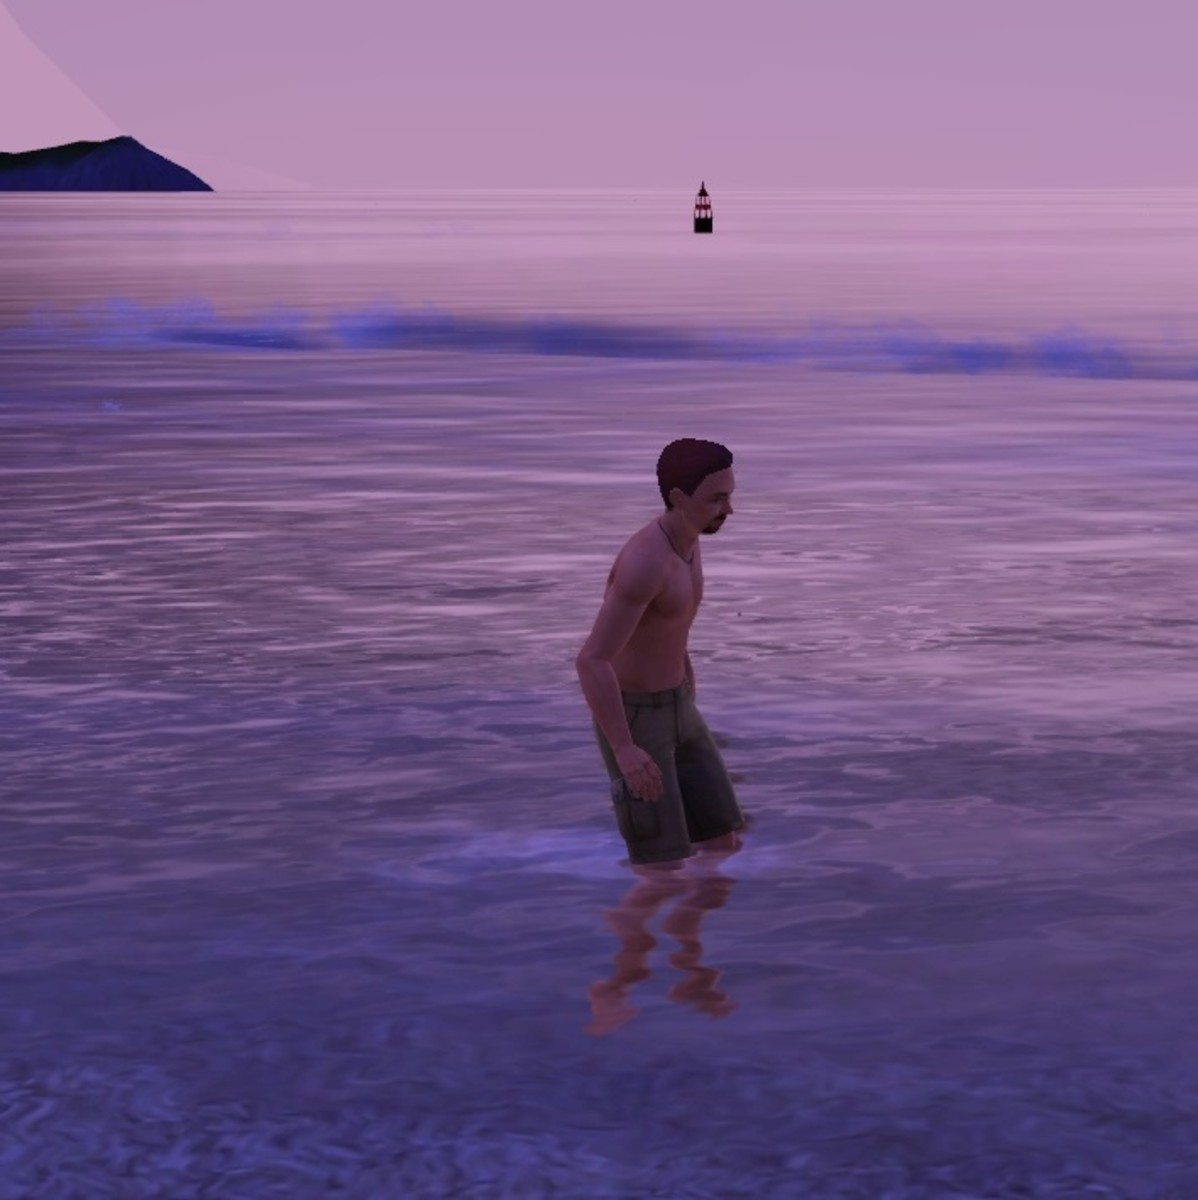 A Sim swimming in the ocean, wishing he has the Surf's Up Sun & Fun Wave Station.